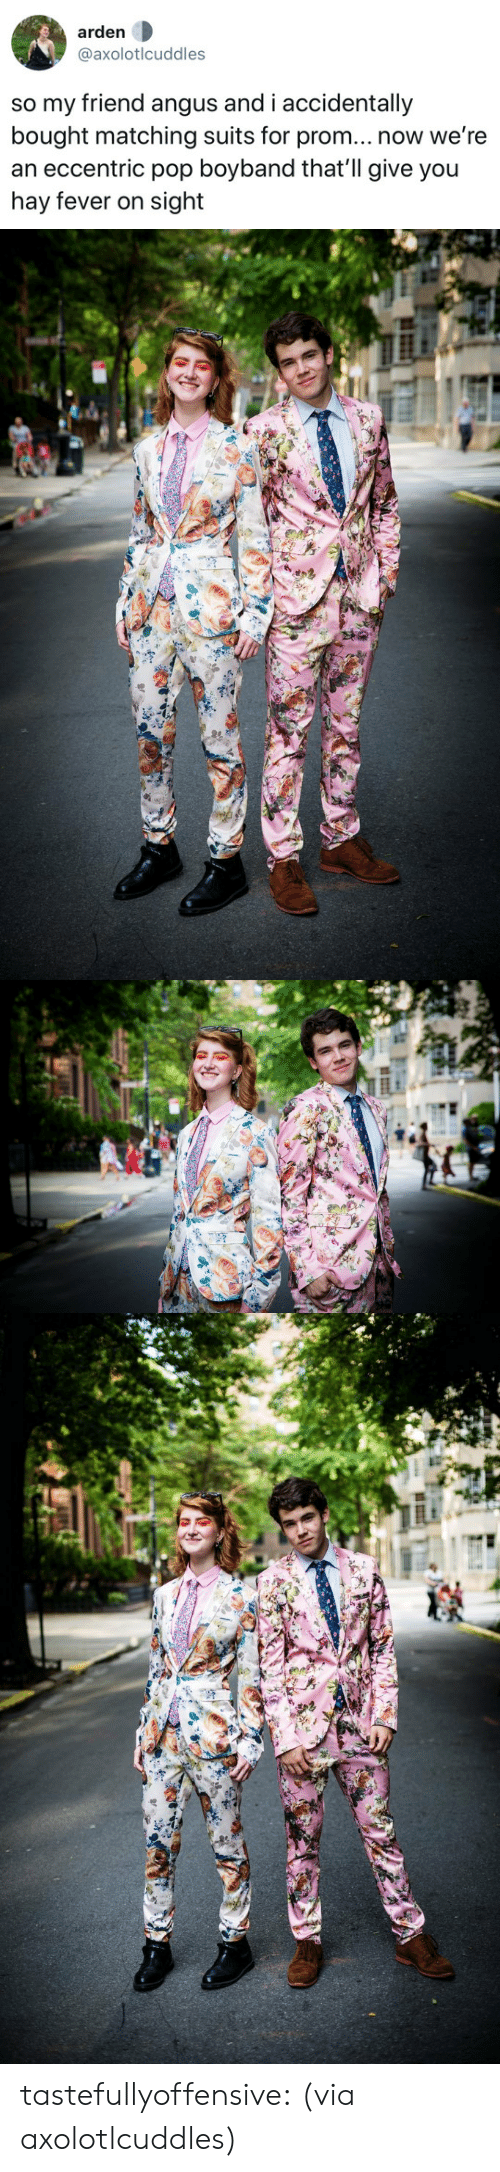 angus: arden  @axolotlcuddles  so my friend angus and i accidentally  bought matching suits for prom... now we're  an eccentric pop boyband that'll give you  hay fever on sight tastefullyoffensive:  (via axolotlcuddles)